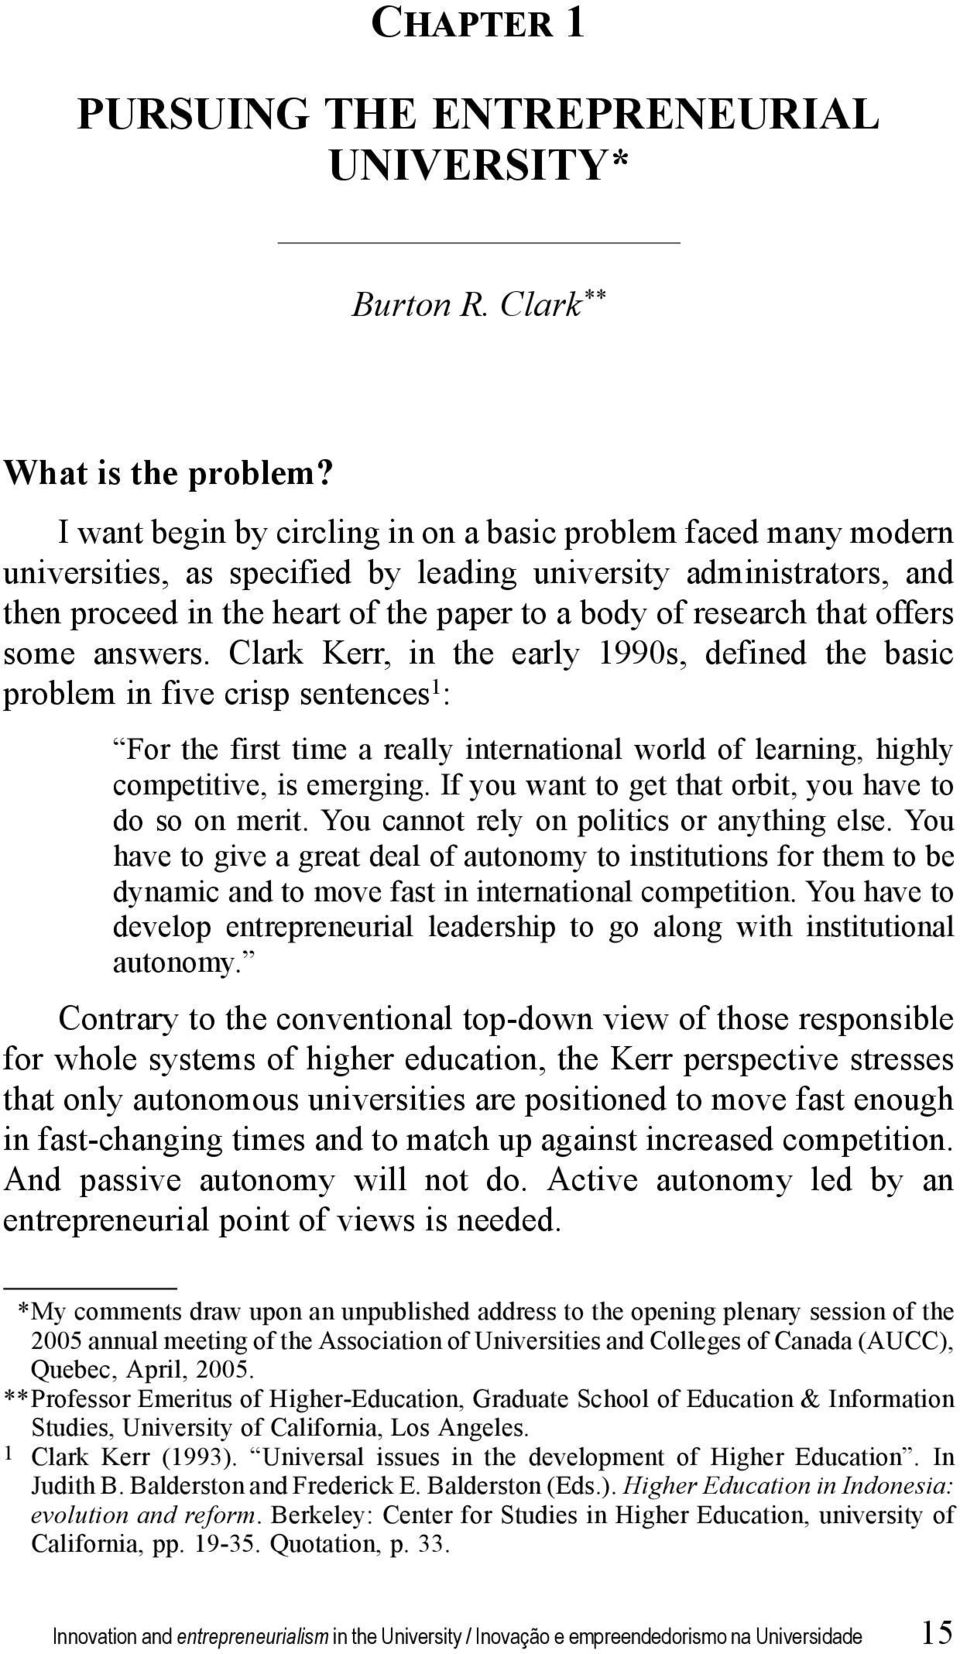 offers some answers. Clark Kerr, in the early 1990s, defined the basic problem in five crisp sentences 1 : For the first time a really international world of learning, highly competitive, is emerging.